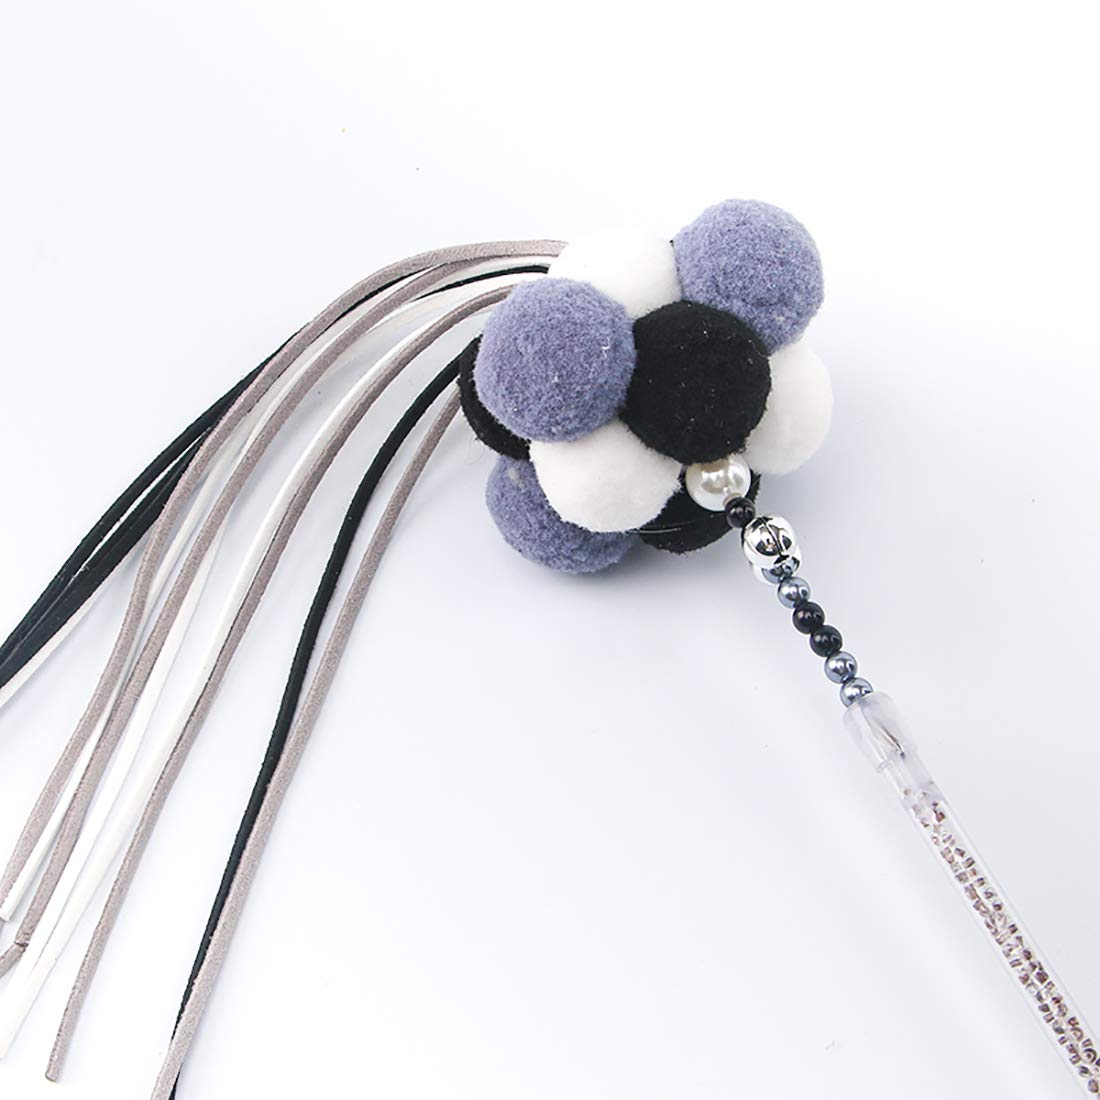 H Pet Supplies Interactive Toy Funny cat Stick Cat Toy Funny cat Toy Long Pole Hairball Tassel Macaron